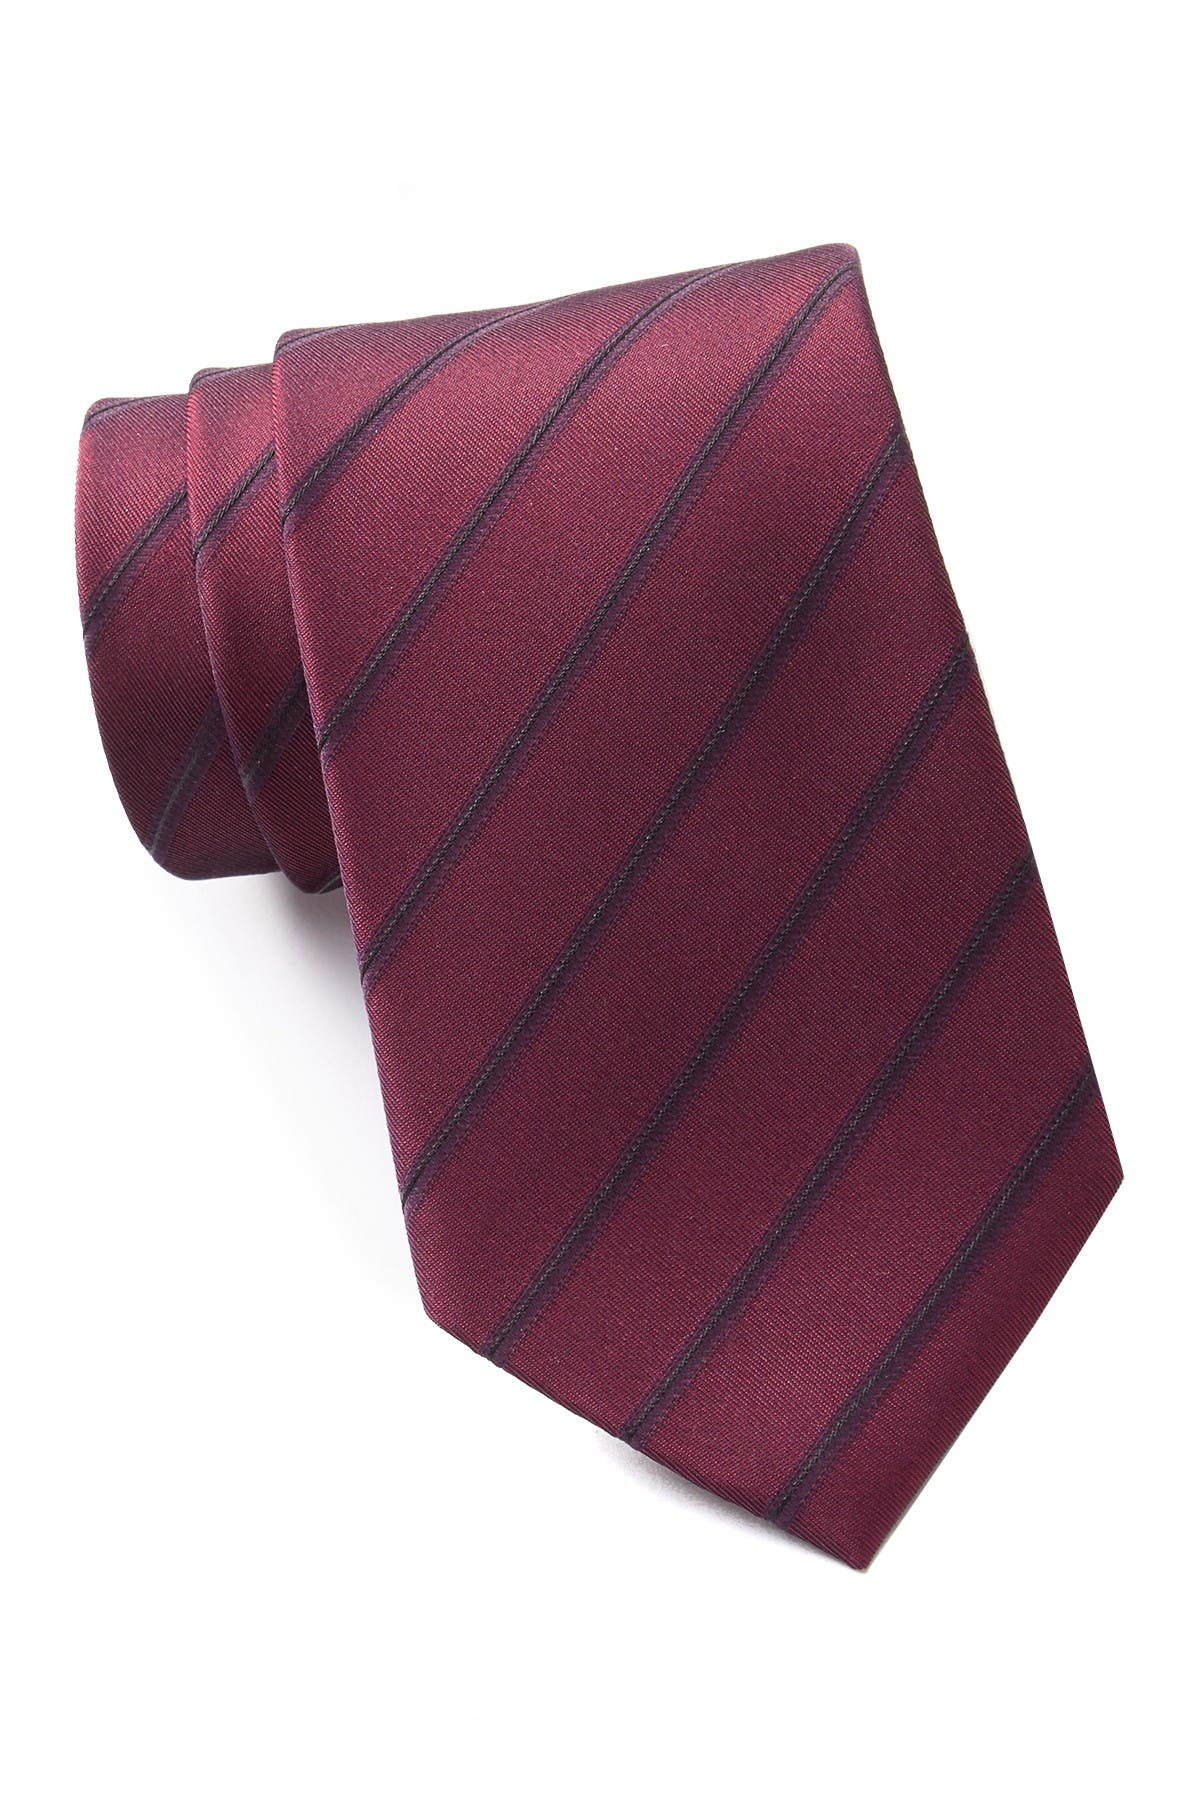 Image of Kenneth Cole Reaction Iridescent Simple Silk Blend Tie